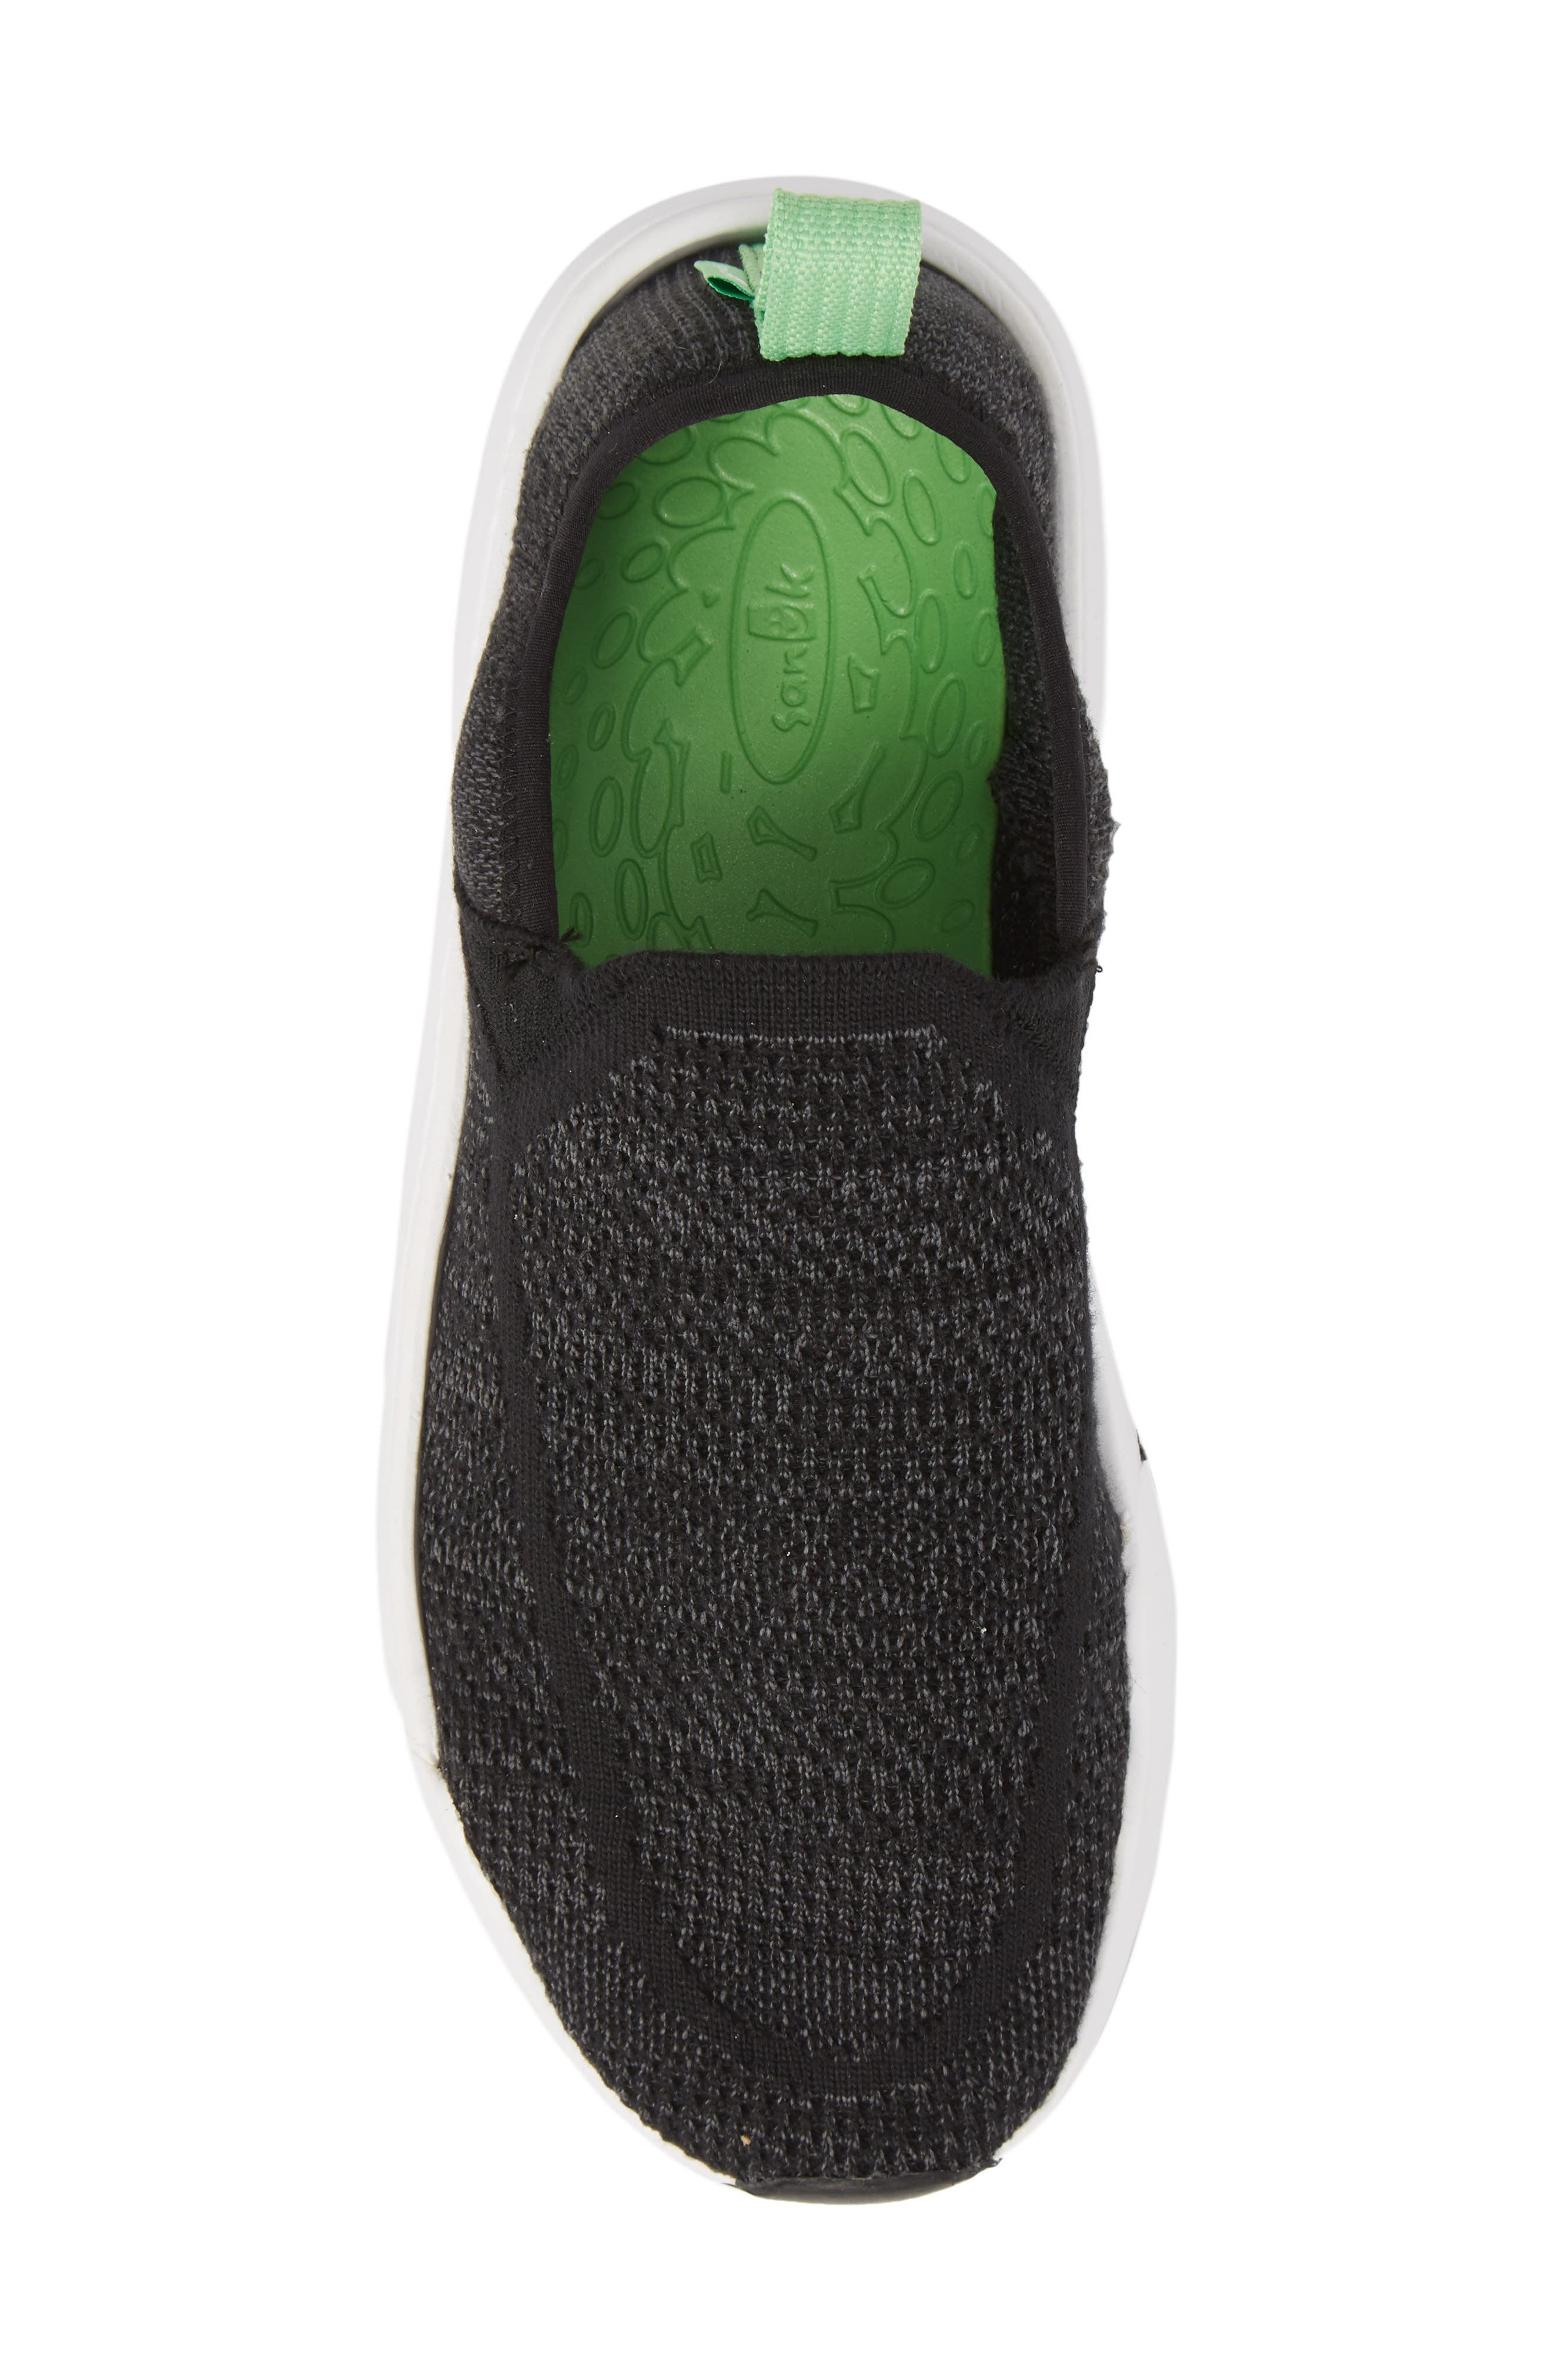 Chiba Quest Knit Slip-On Sneaker,                             Alternate thumbnail 5, color,                             BLACK